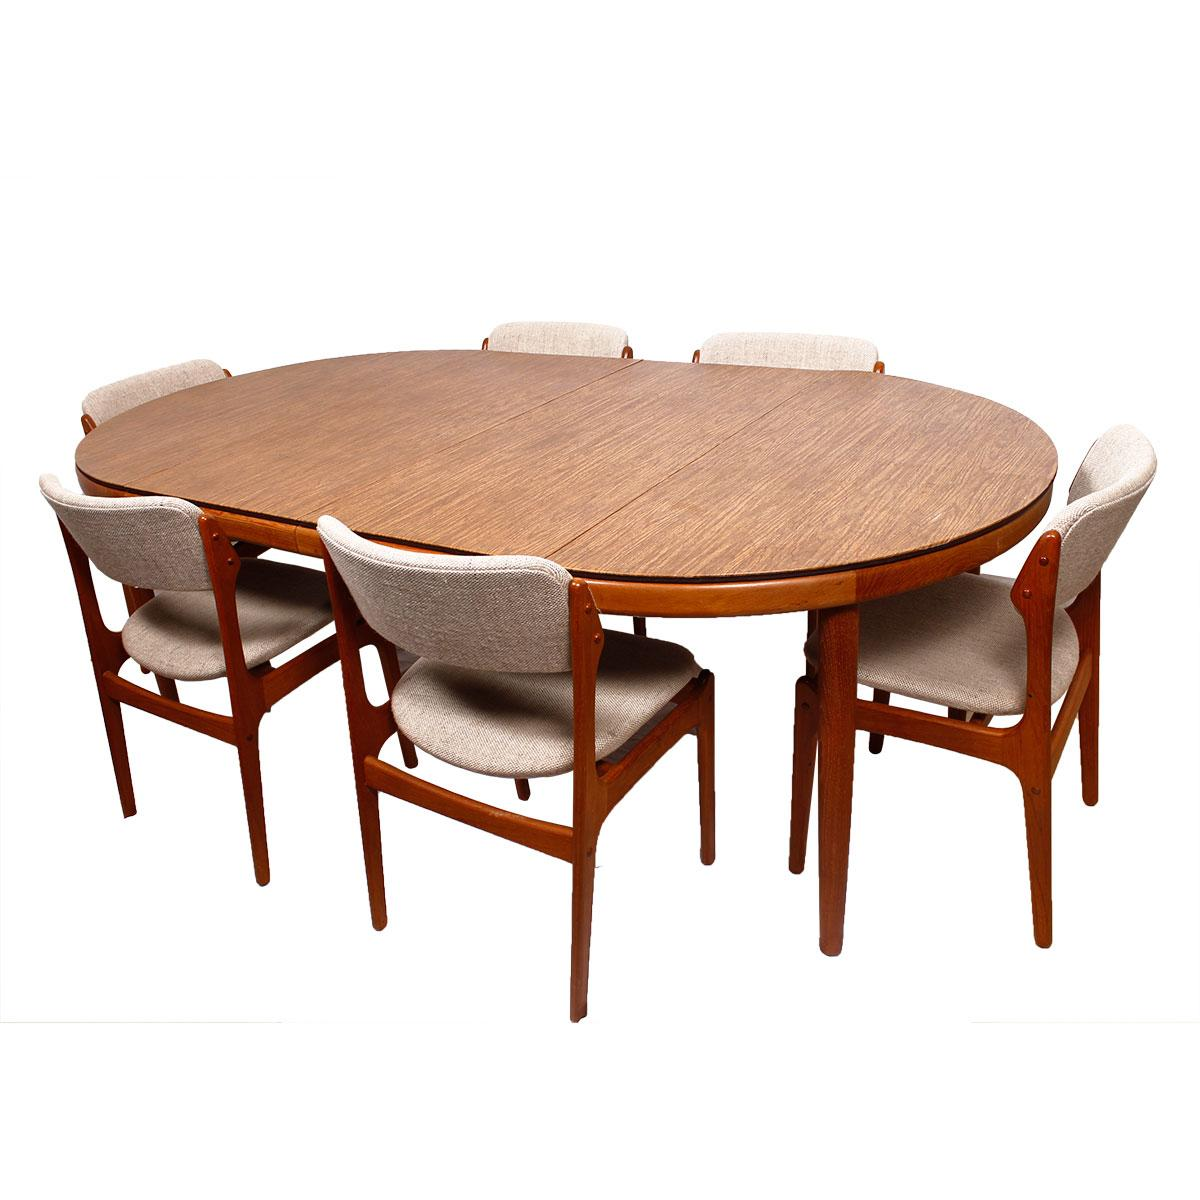 Danish Teak RoundOval Dining Table amp Pads Chairish : 9dde4686 3cb9 4cda 8636 d0b884c4f511aspectfitampwidth640ampheight640 from www.chairish.com size 640 x 640 jpeg 40kB